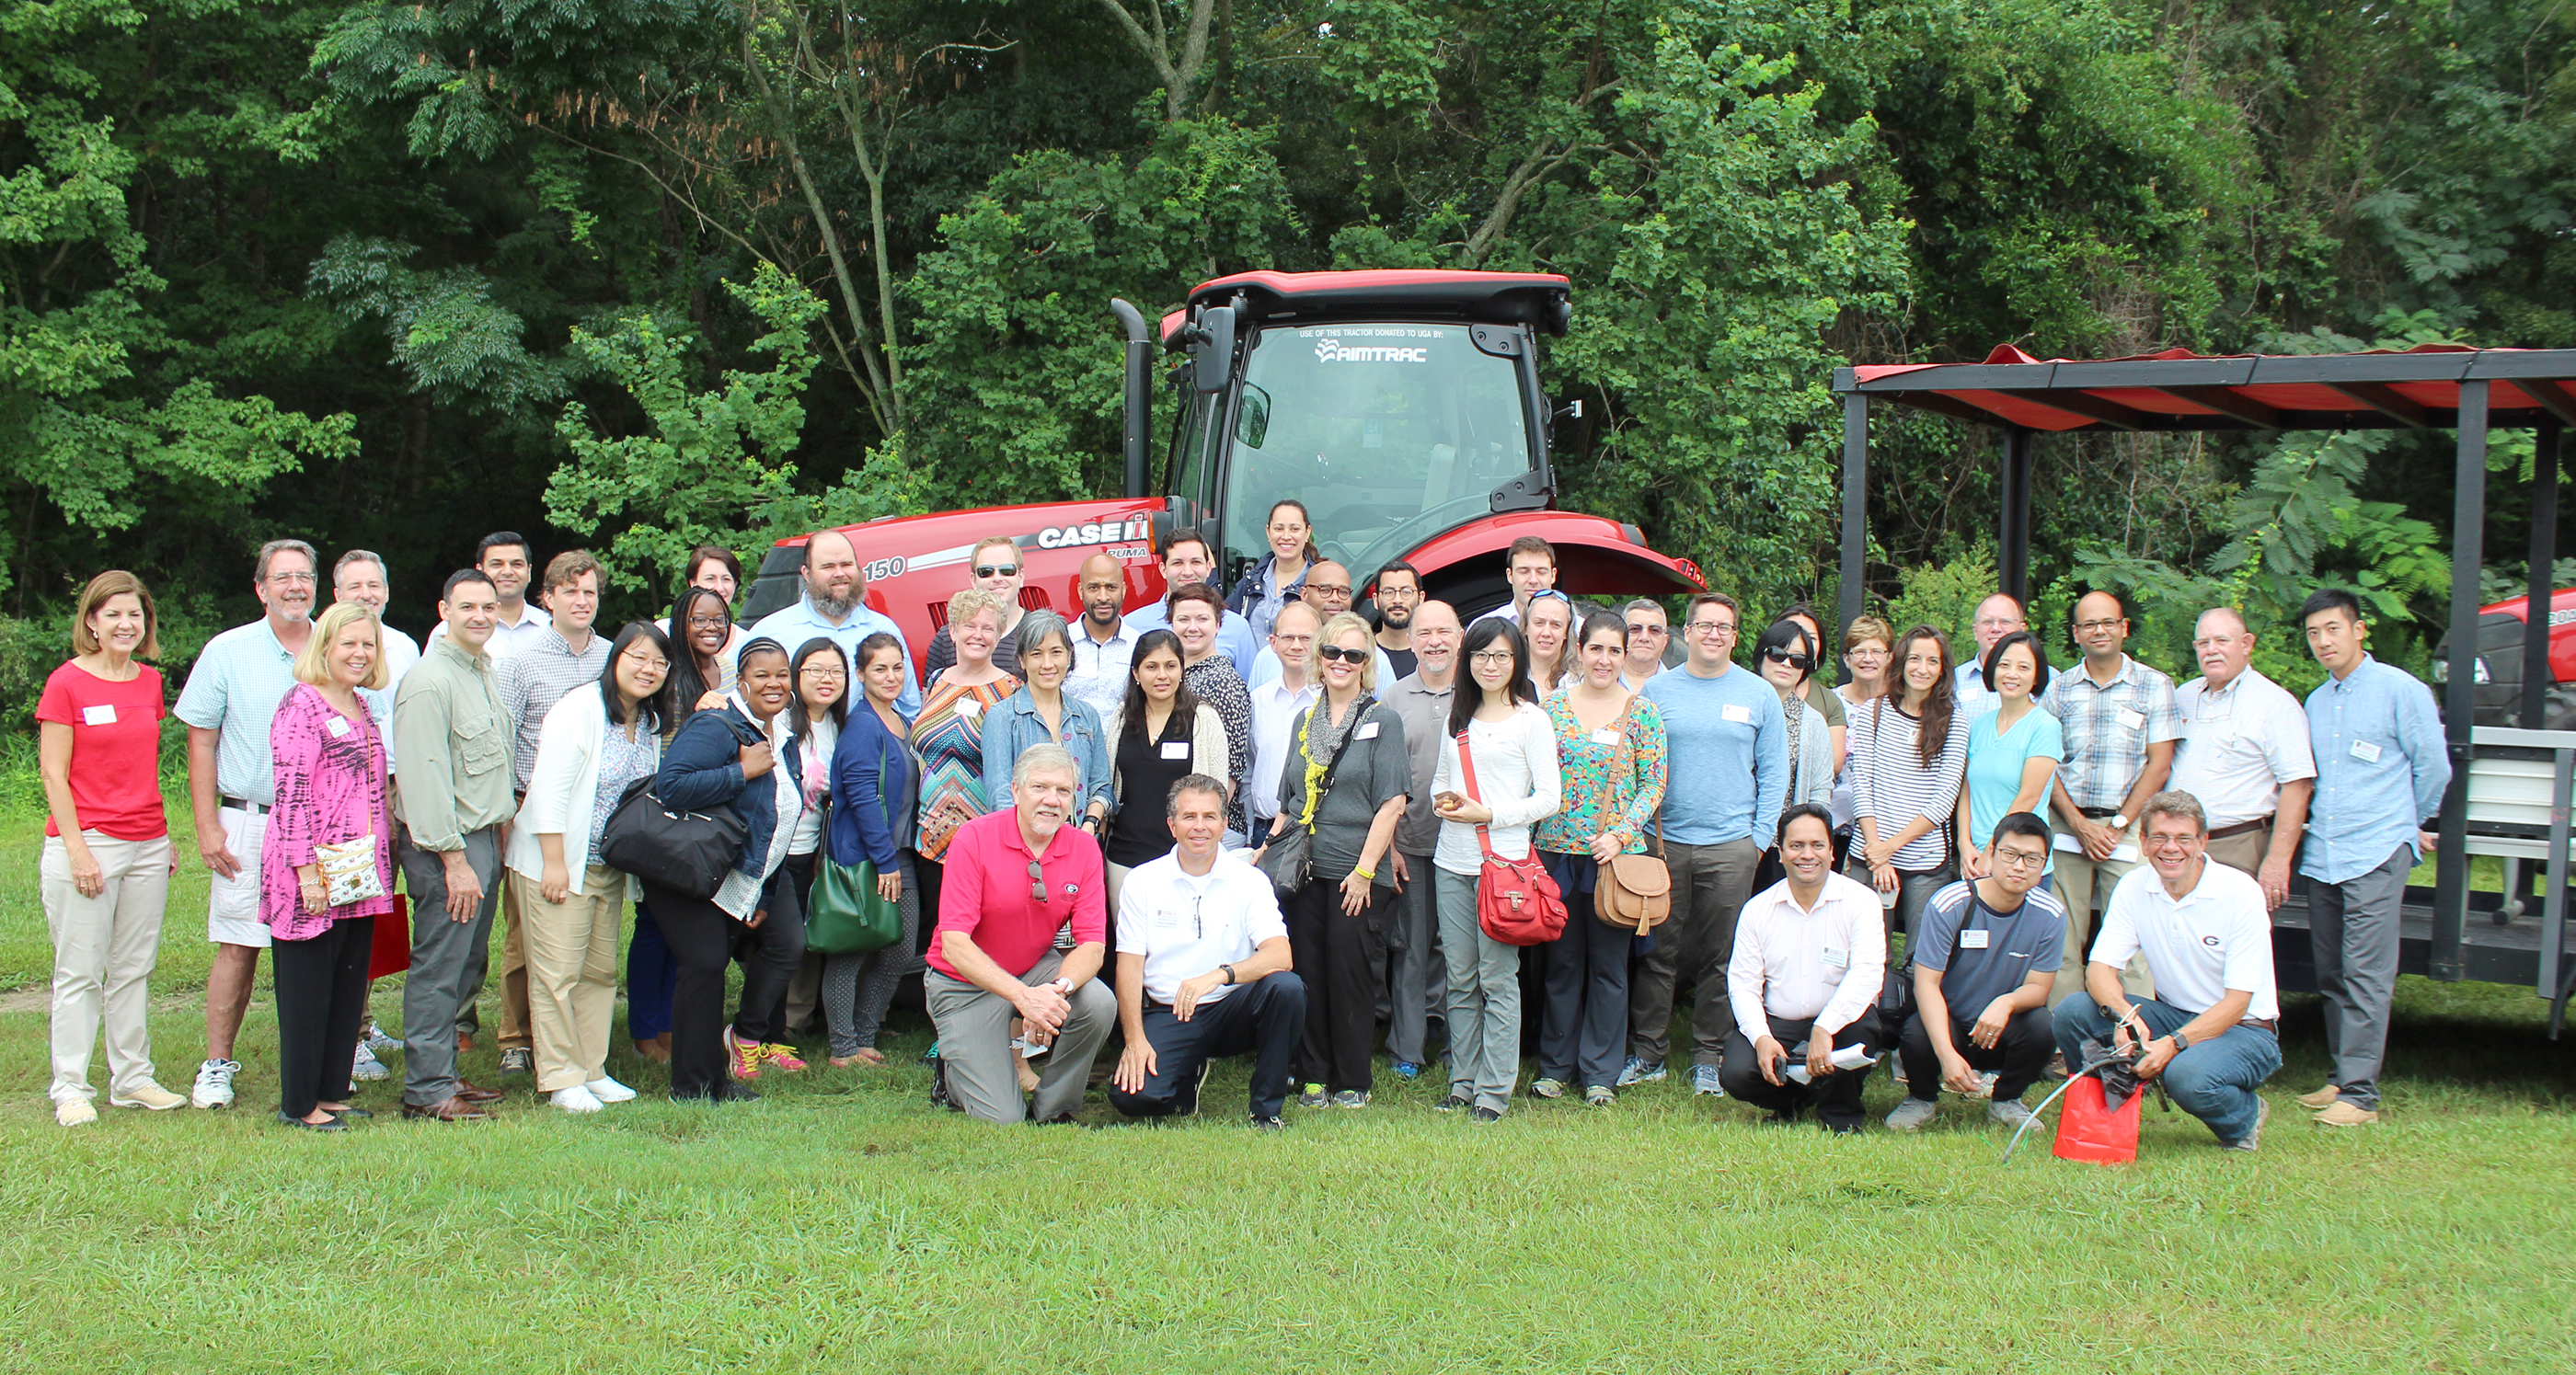 The UGA New Faculty Tour made a stop at the UGA Tifton campus on Thursday, Aug. 10, 2017.